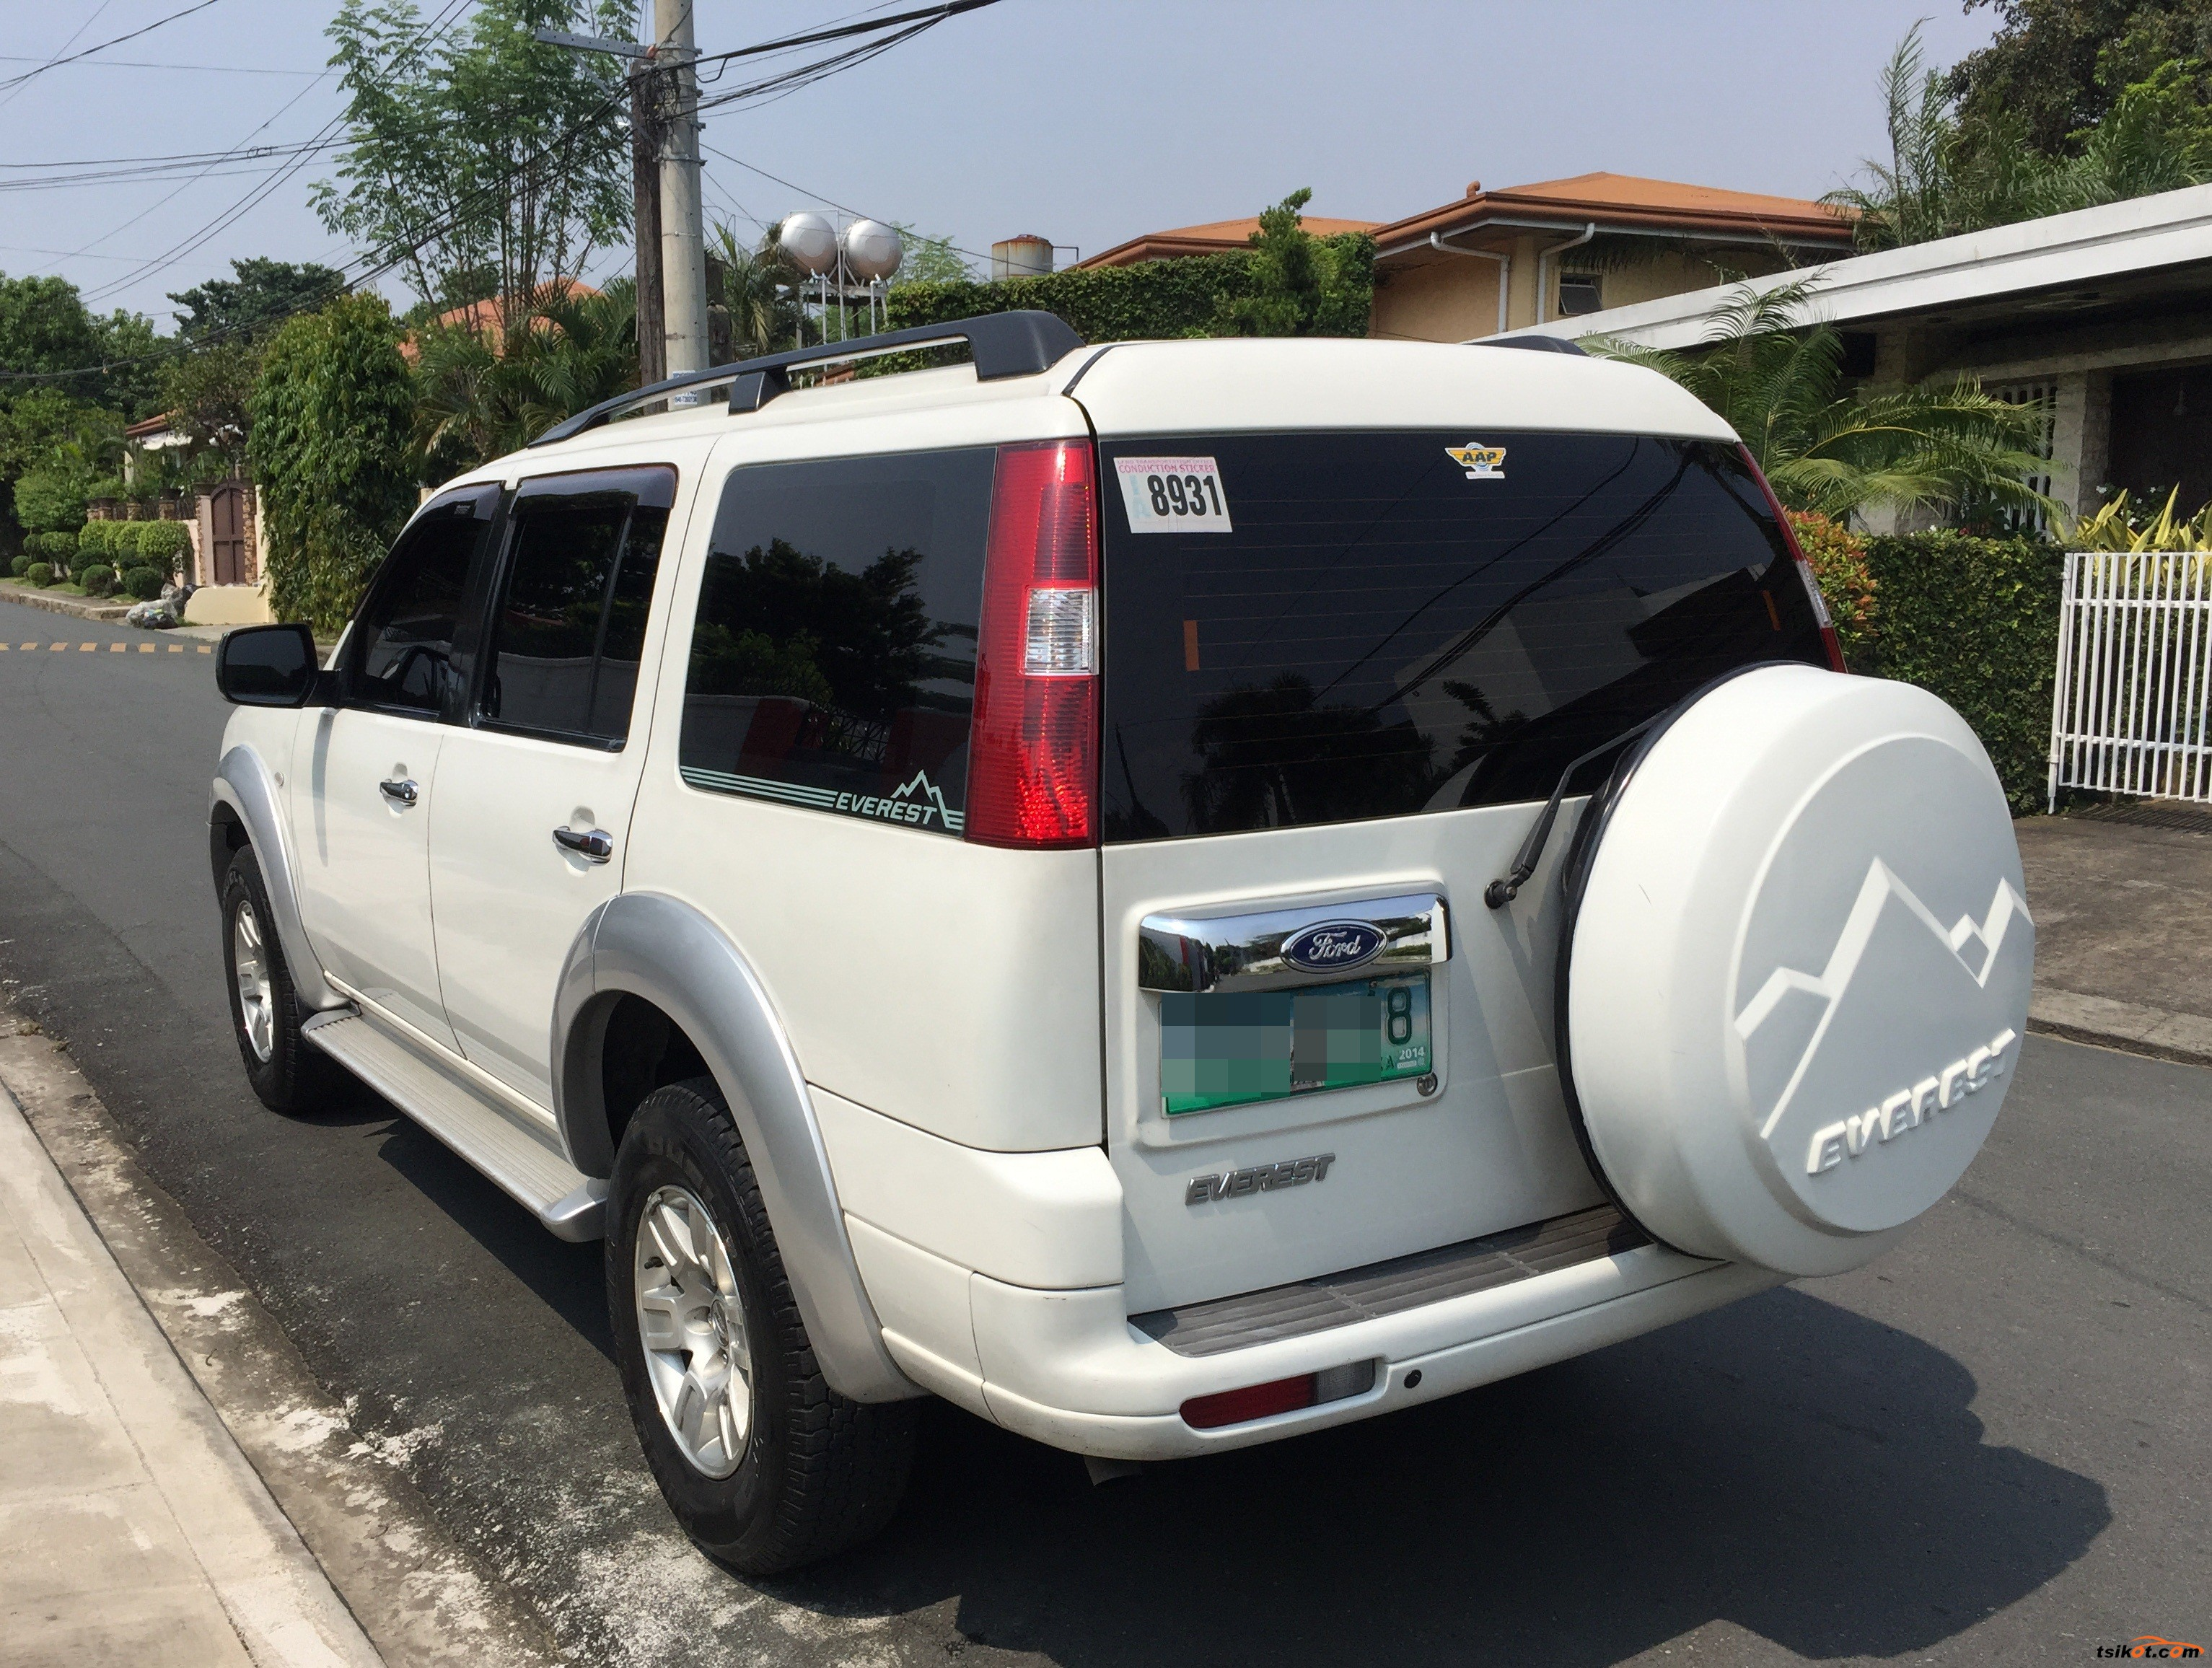 Ford Everest 2007 - 5